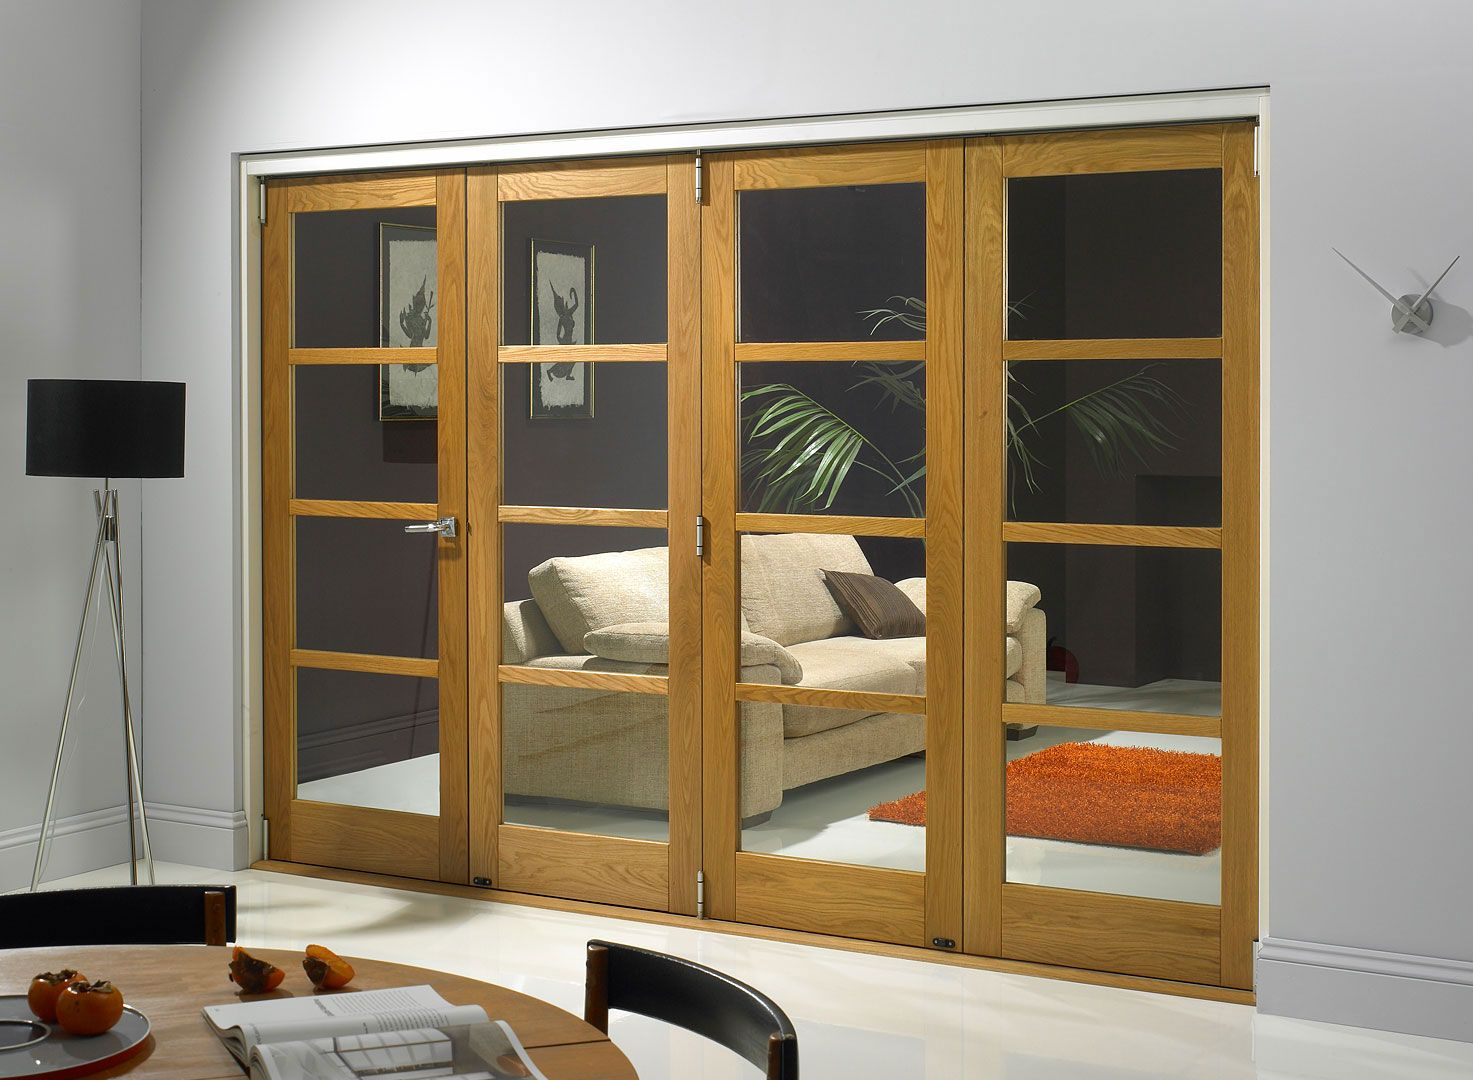 Made to measure internal folding doors - Vufold Inspire Is A Unique Internal Room Divider Door With Fold Back Technology Giving Flexibilty Of Opening Options